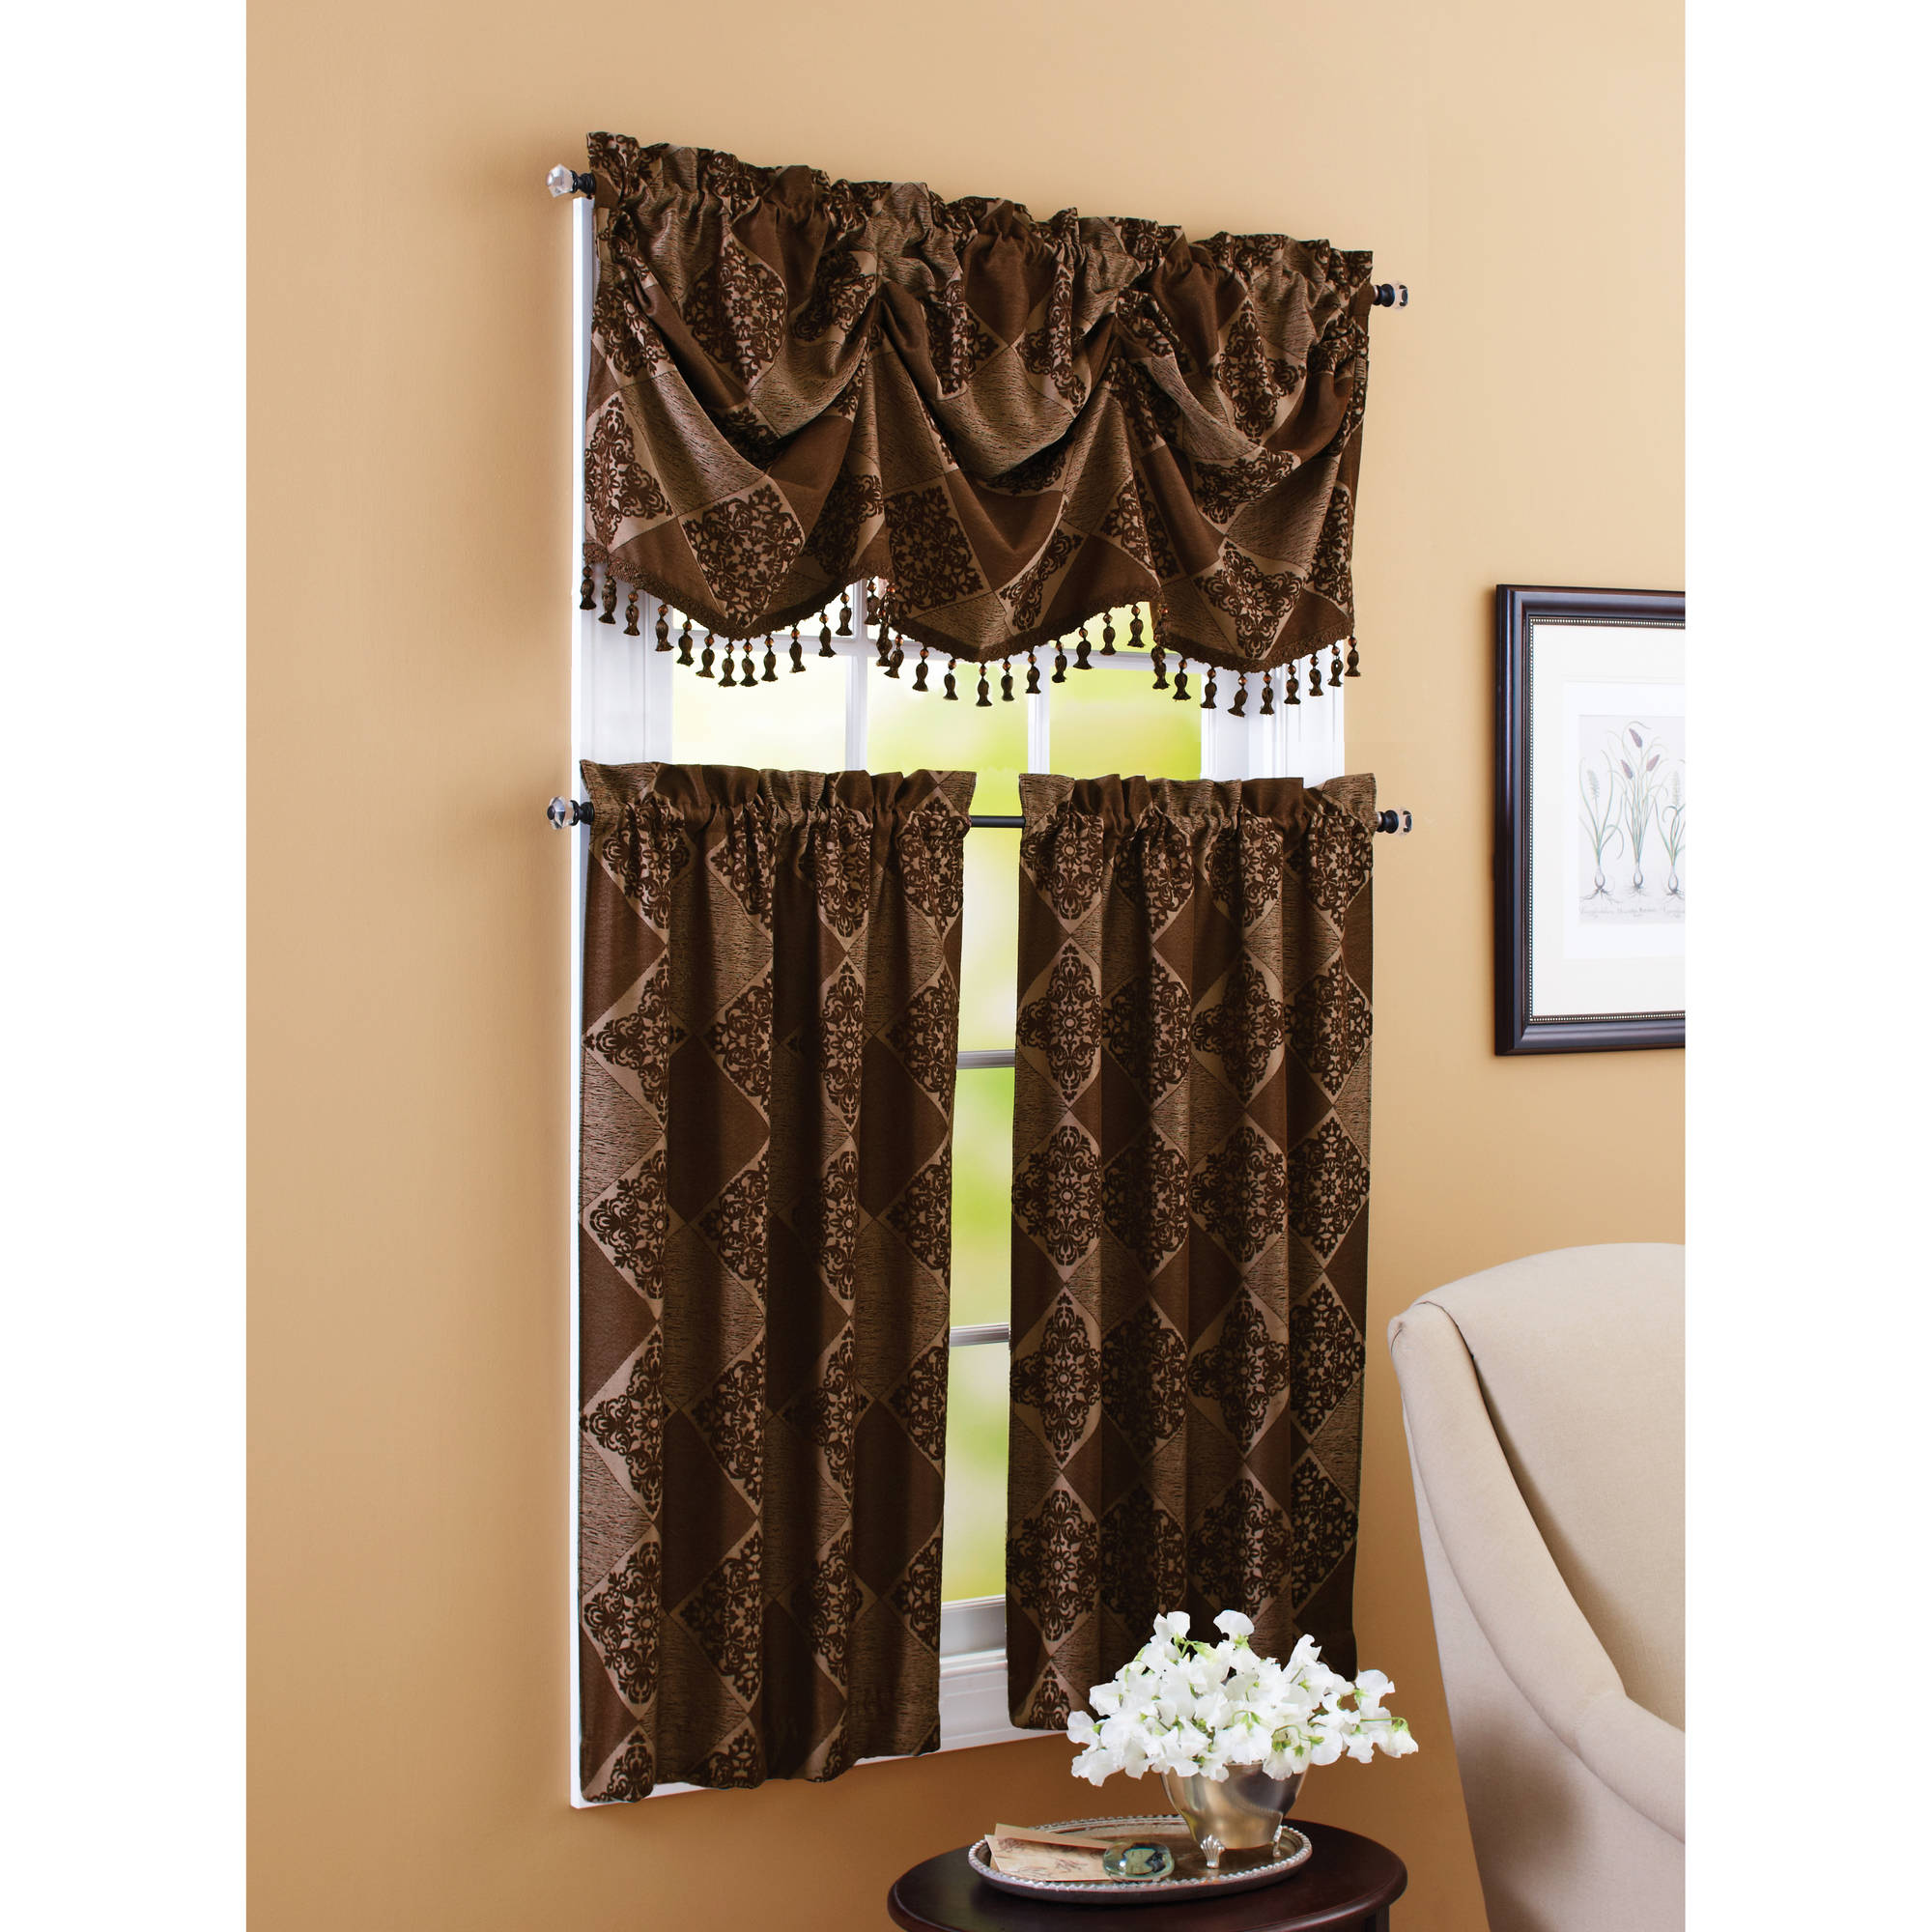 "Better Homes and Gardens Boucle 24"" Tier Curtain"